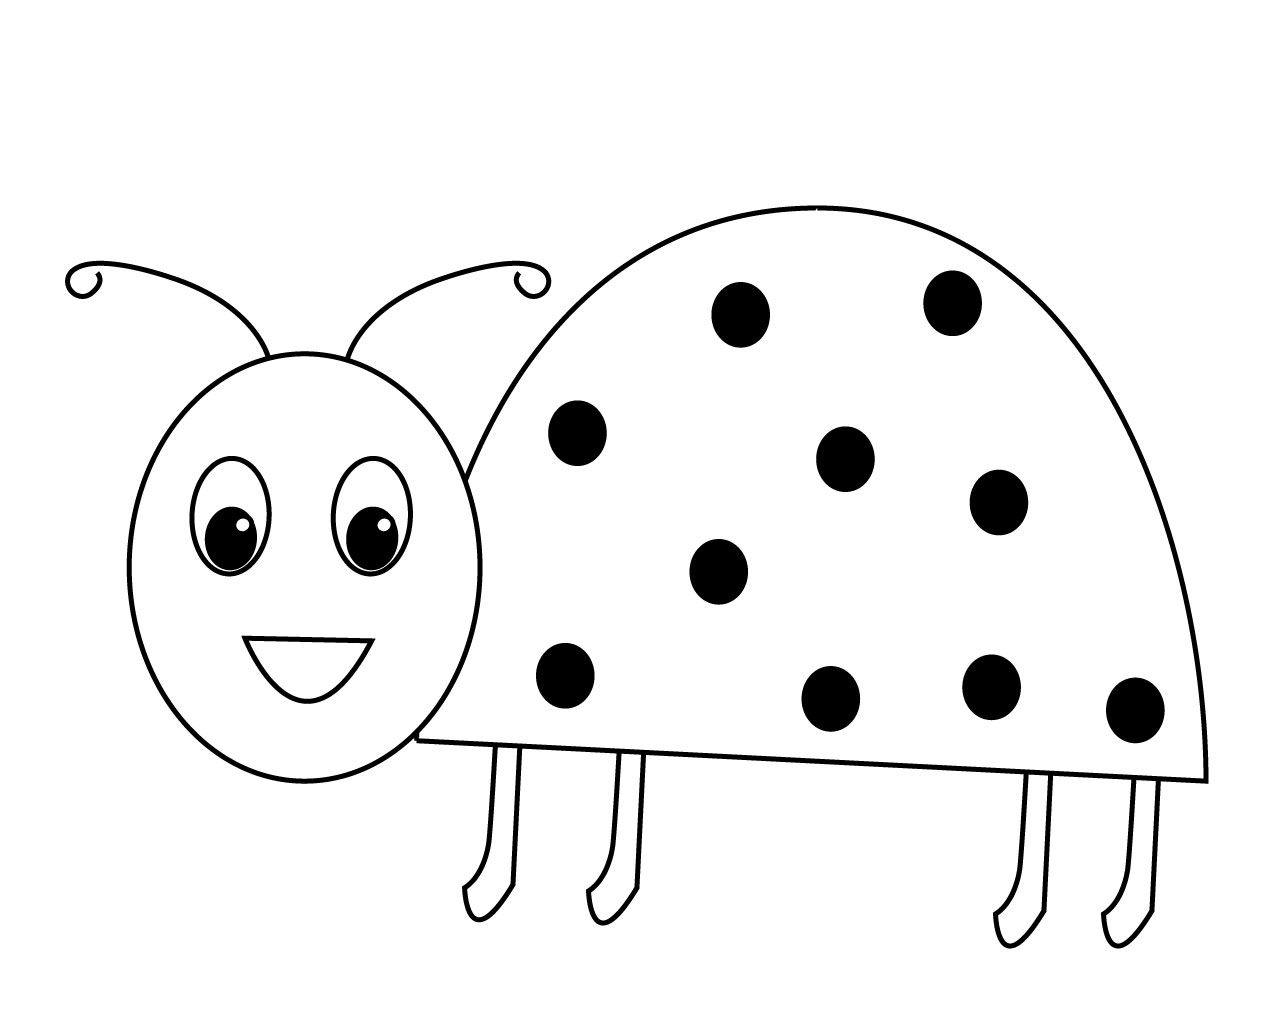 photo regarding Printable Ladybug called Simple Ladybug Coloring Web pages Absolutely free Printable